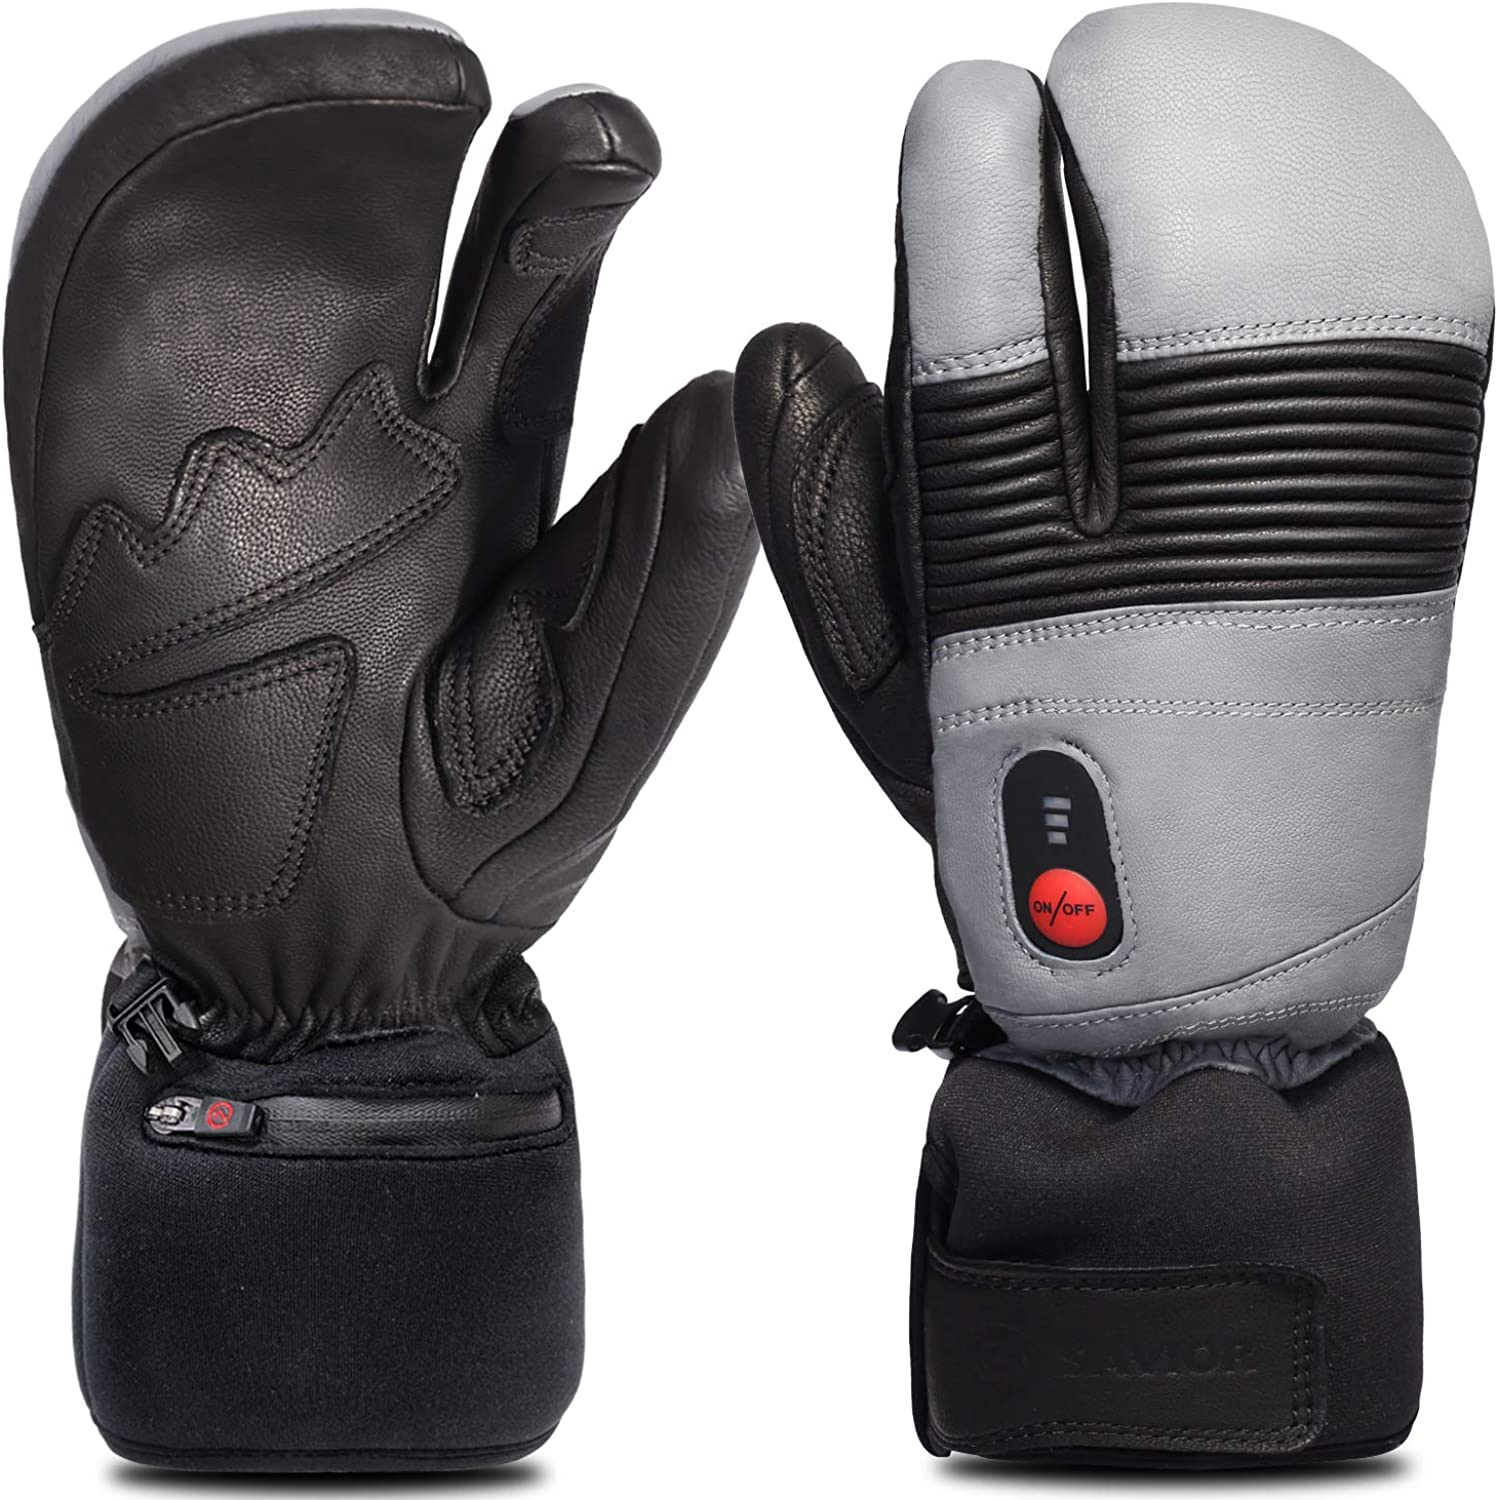 Electric Heated Mittens Battery Ski Rechargeable Max 60% OFF Gloves USB Moto gift